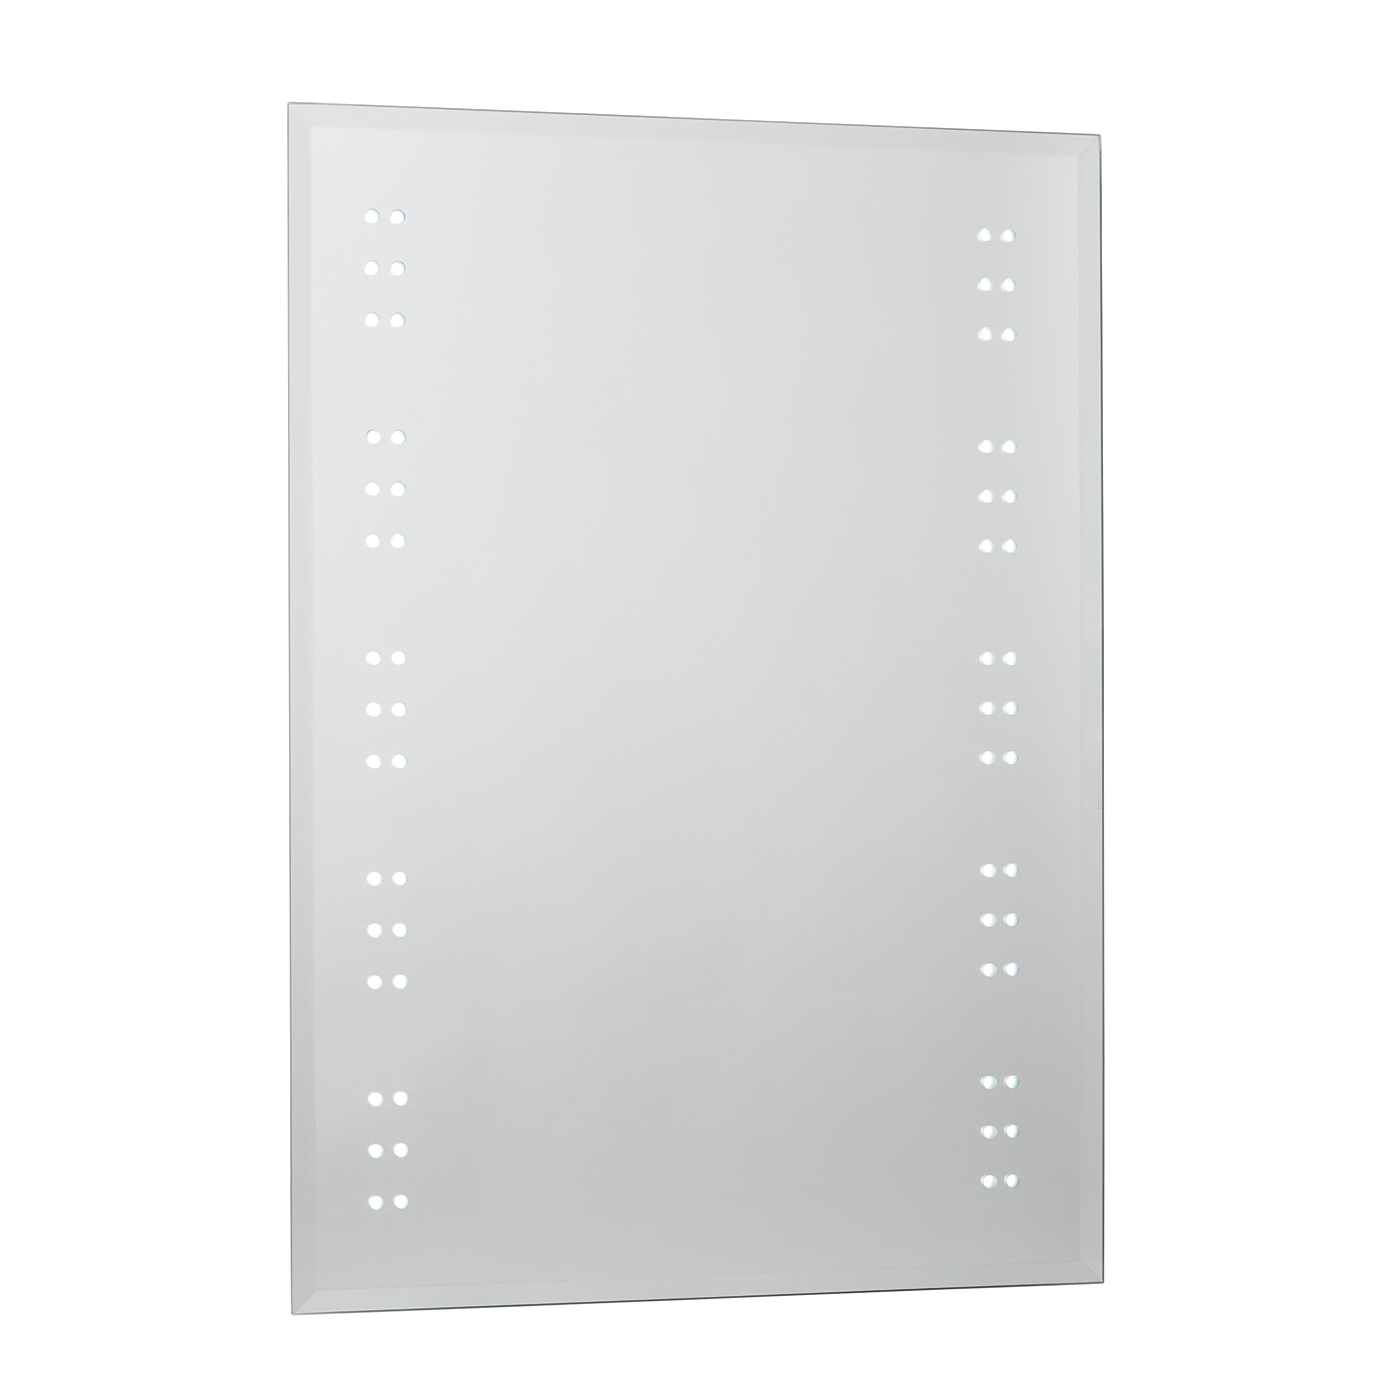 Endon Kastos LED bathroom mirror IP44 3W demister sensor H: 700mm W: 500mm